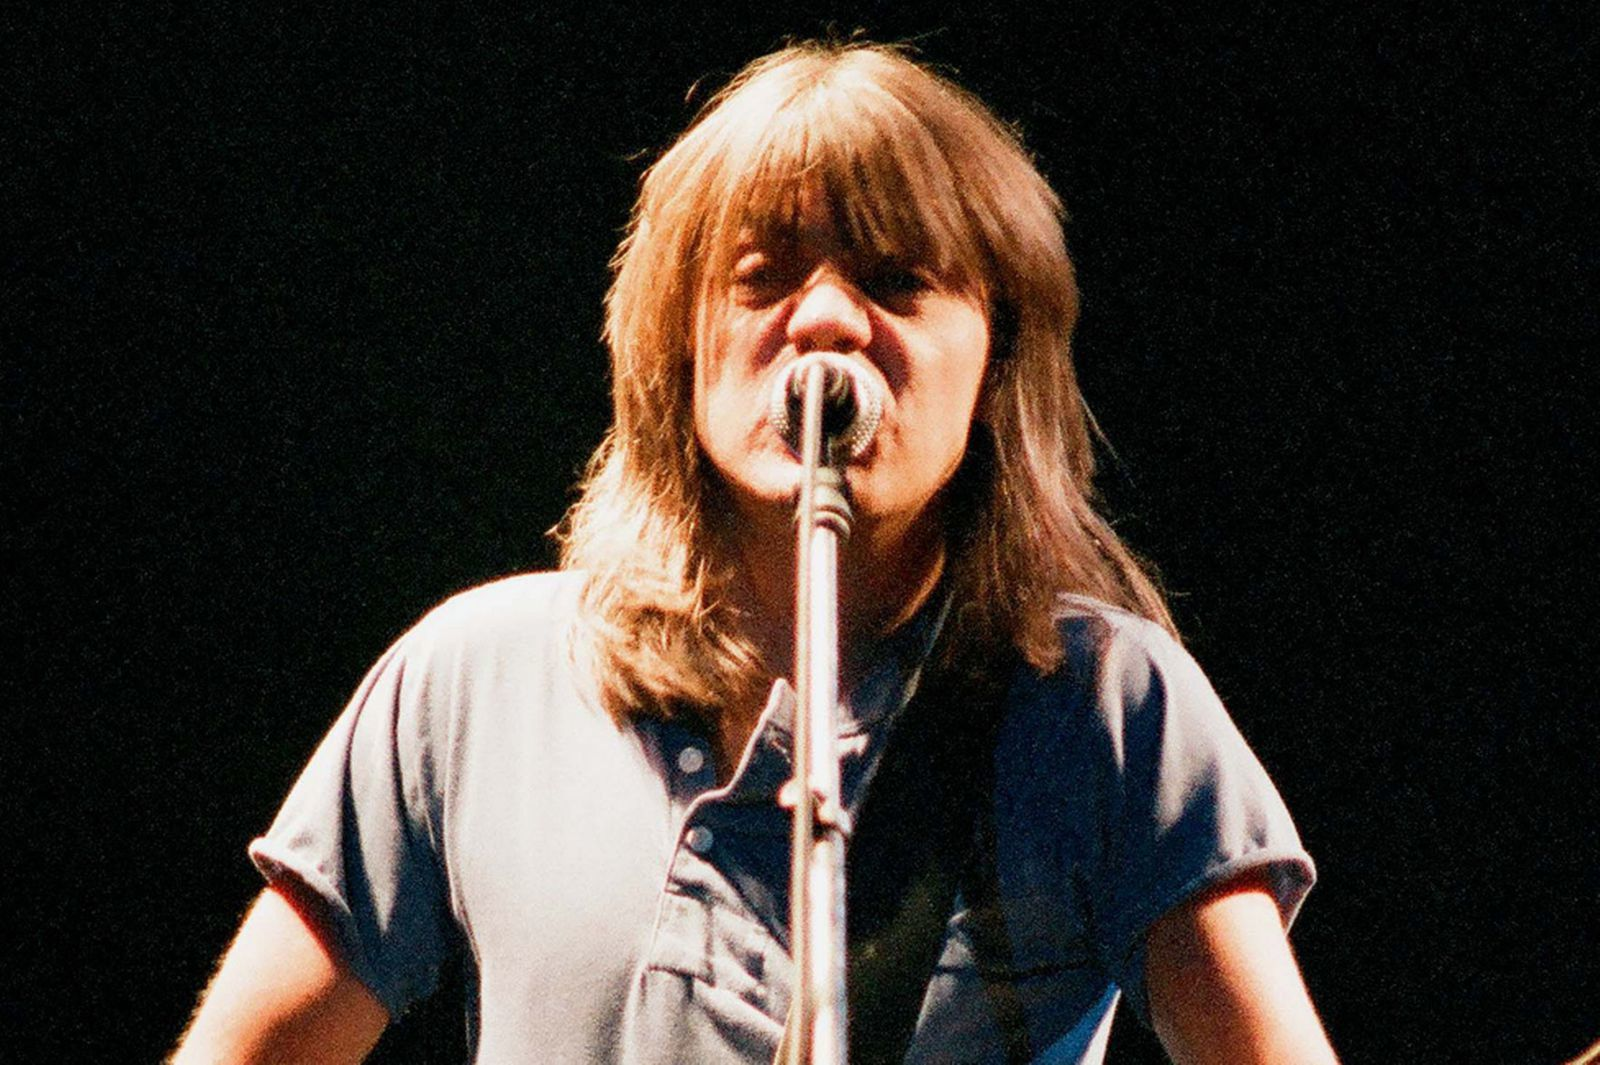 1986: Malcolm Young of AC DC performs on stage at Wembley Arena on January 17th, in London, United Kingdom - credit: Peter Still